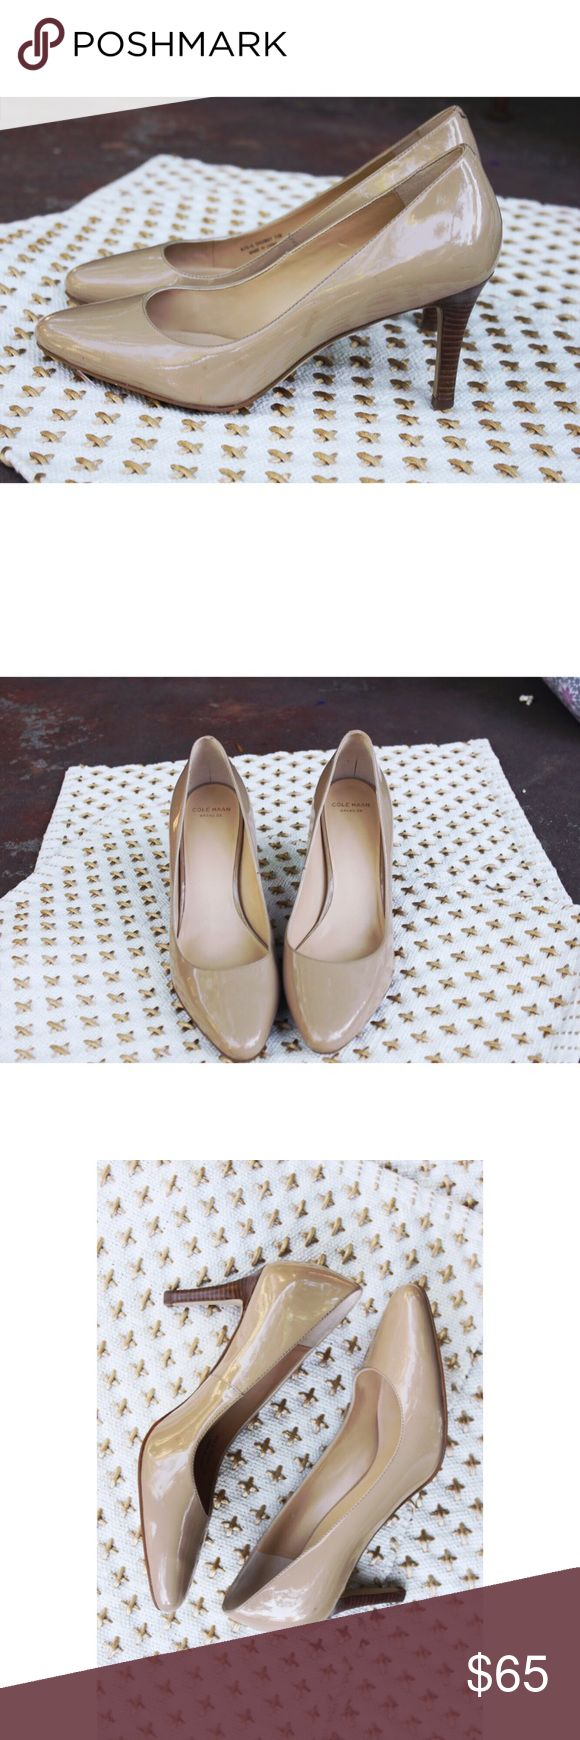 "Cole Haan Patent Pumps Beautiful nude patent pumps from Cole Haan in excellent condition, only worn once or twice. 3"" heel adds a height while still being super comfortable Cole Haan Shoes Heels"